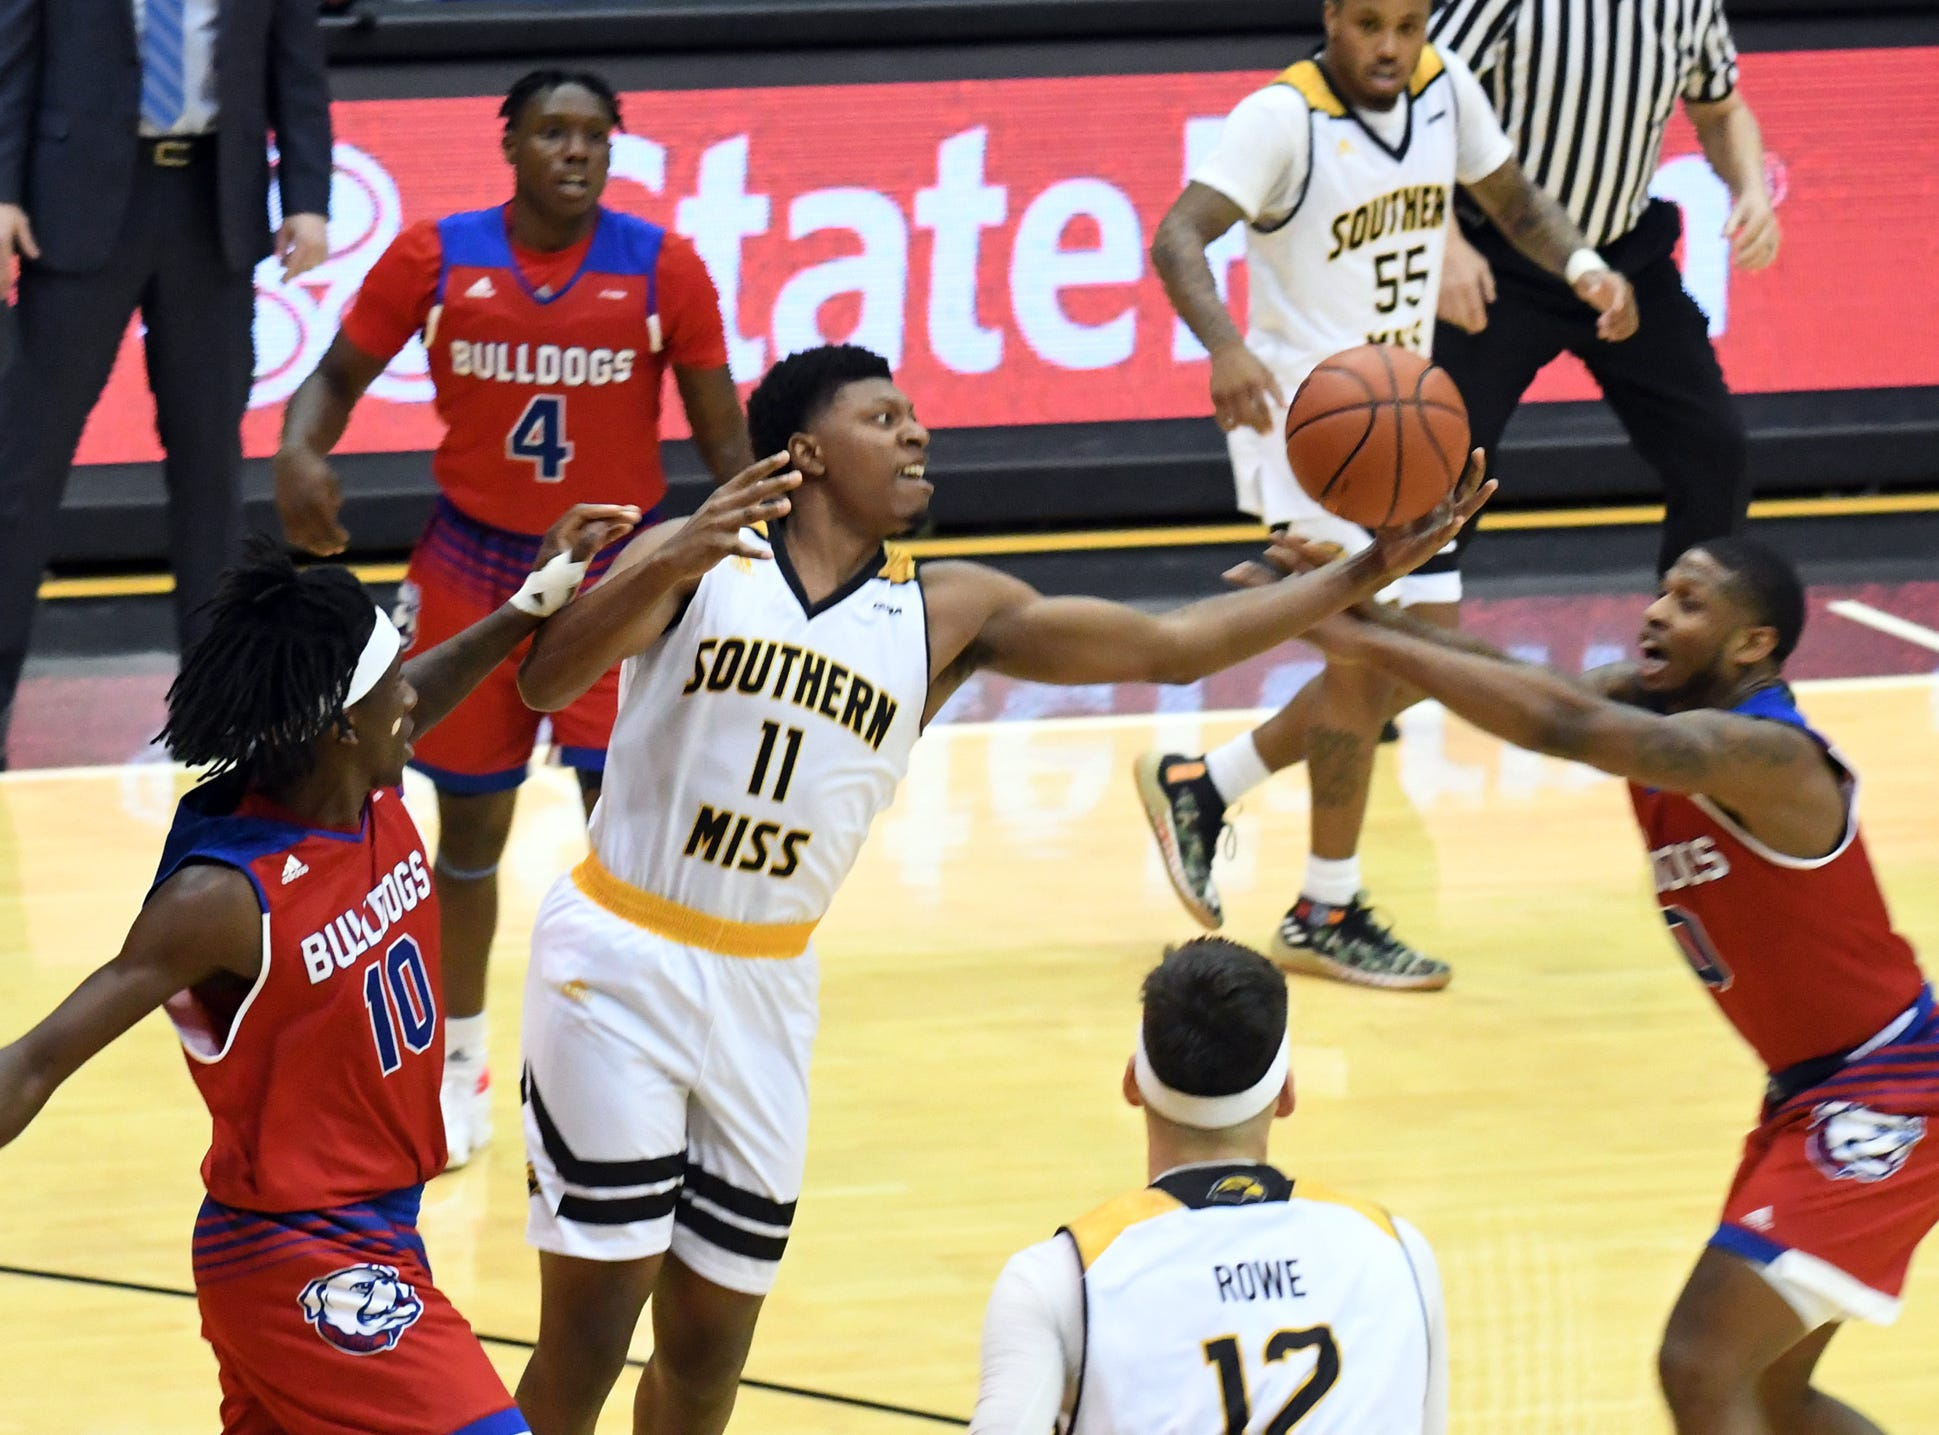 Southern Miss guard Ladavius Draine reaches for a rebound in a game against Louisiana Tech in Reed Green Coliseum on Saturday, February 9, 2019.